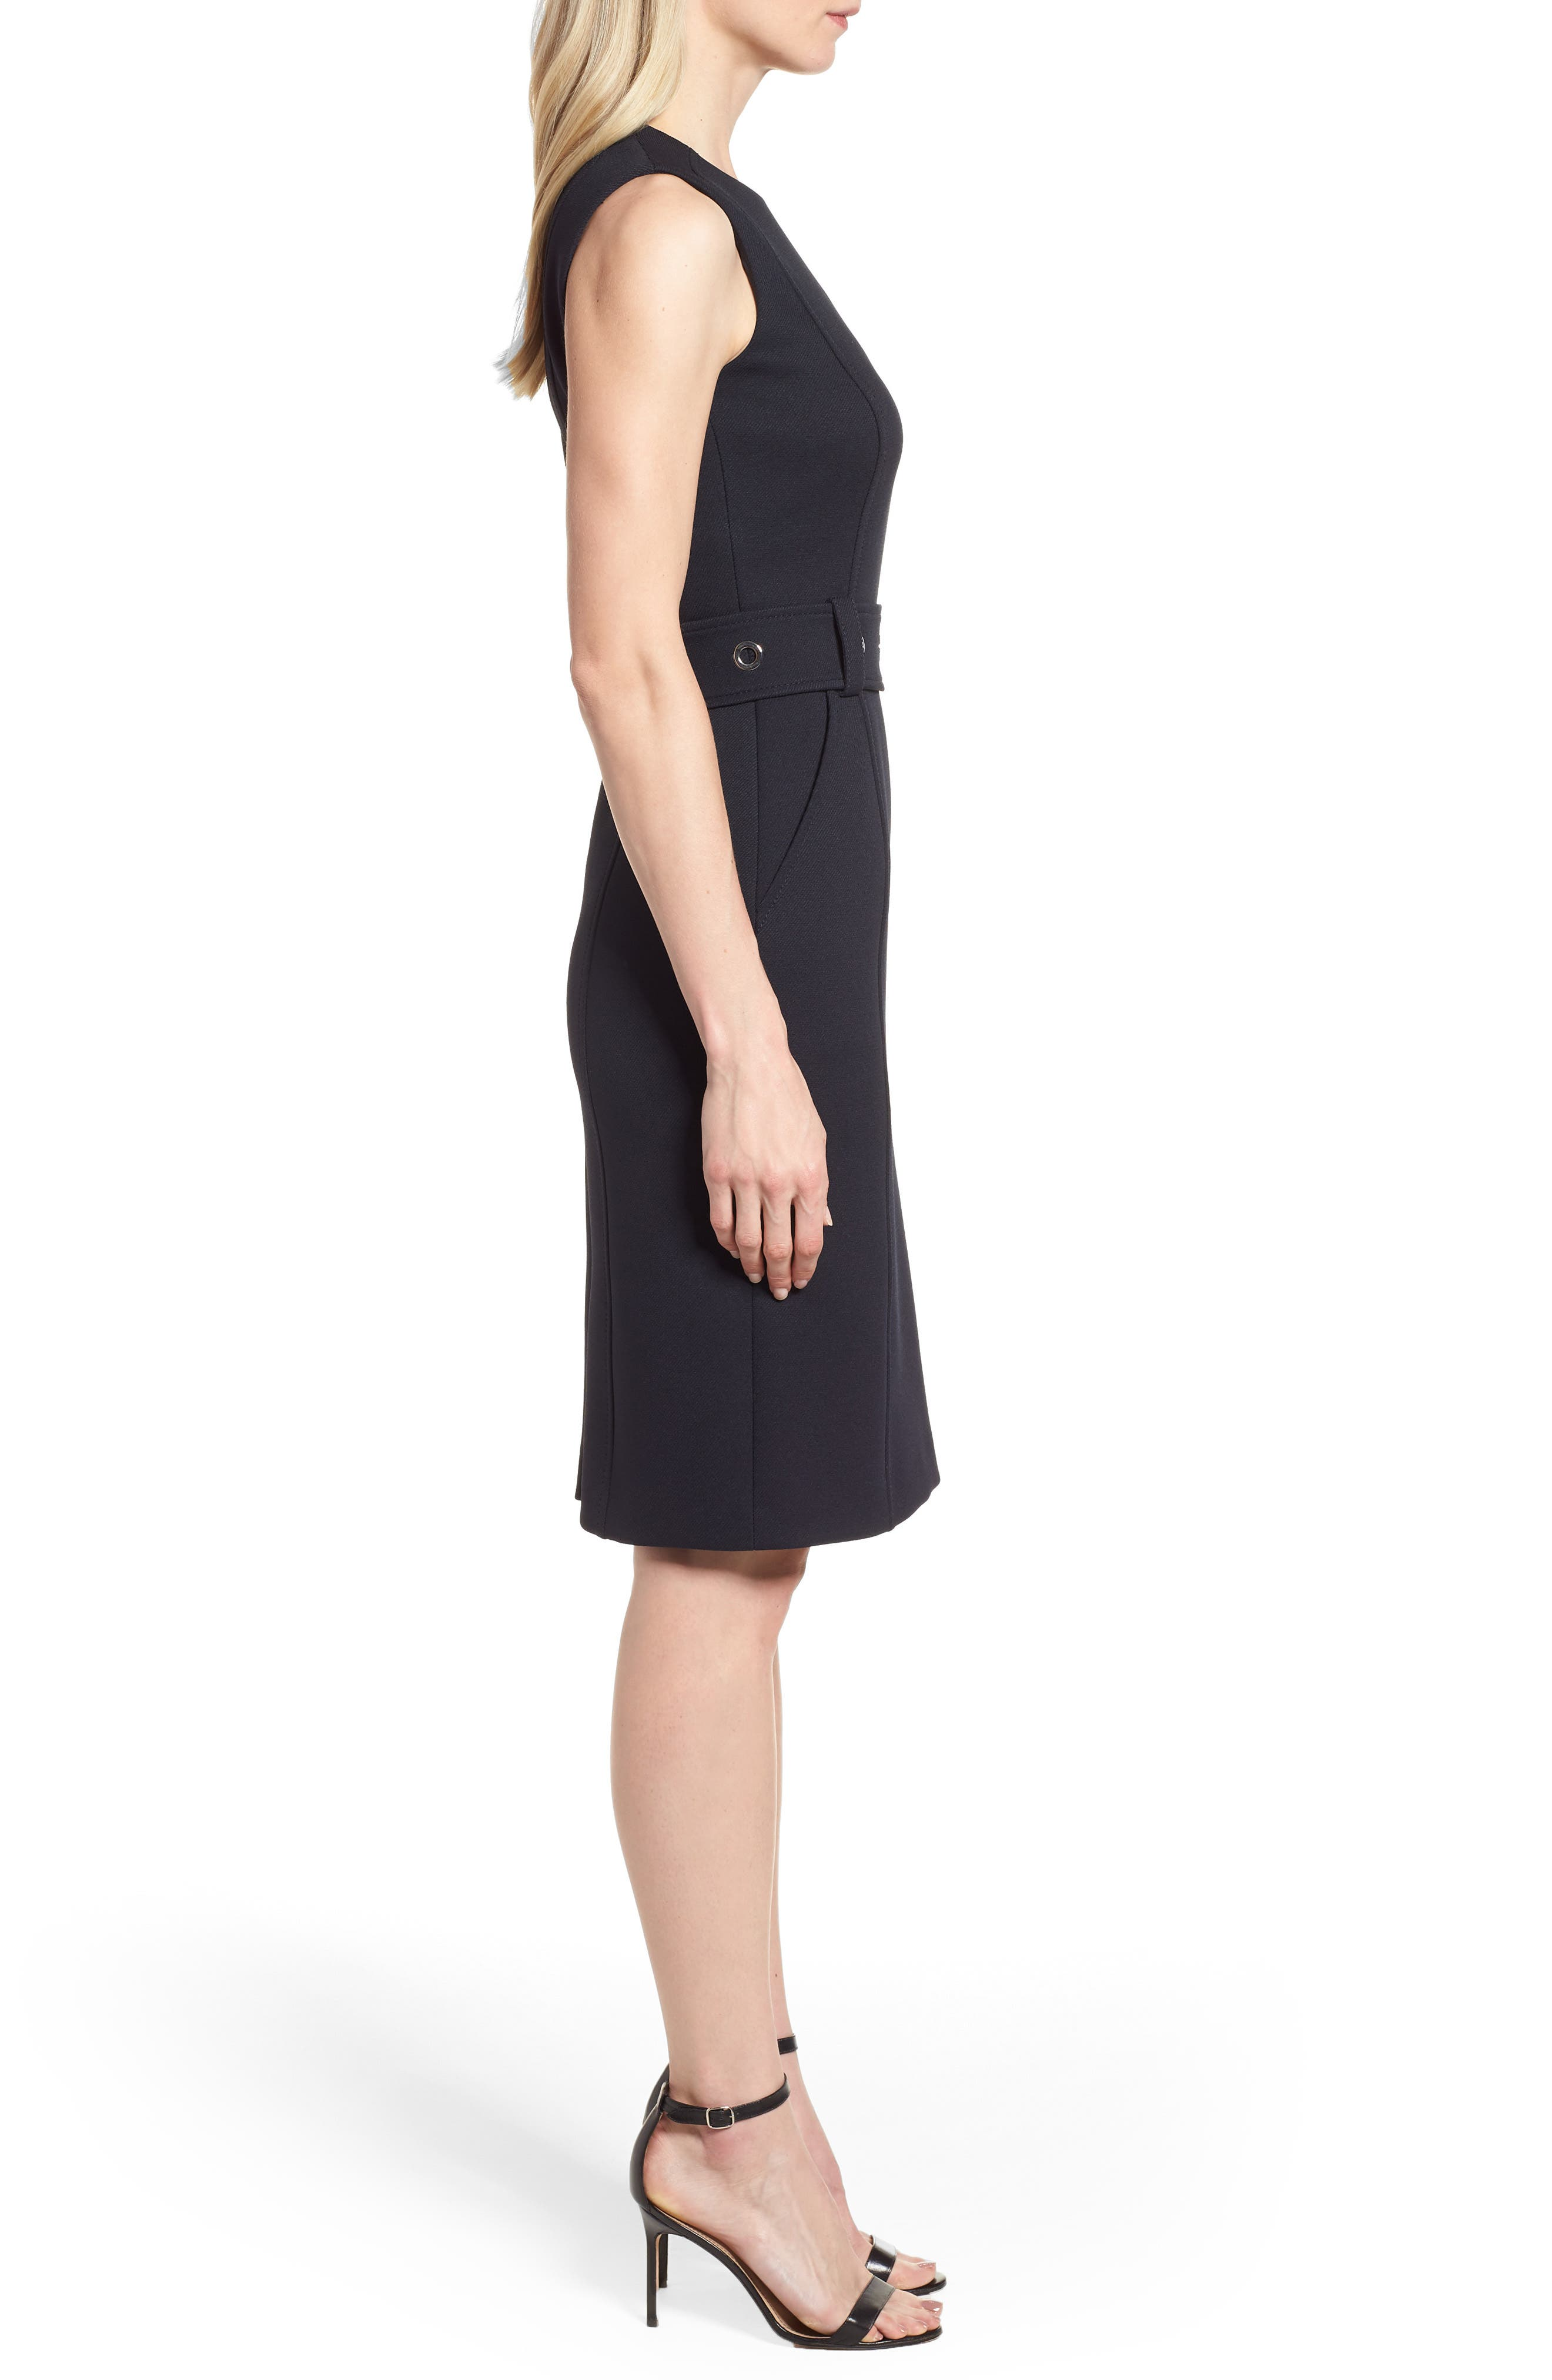 Duleama Belted Sheath Dress,                             Alternate thumbnail 3, color,